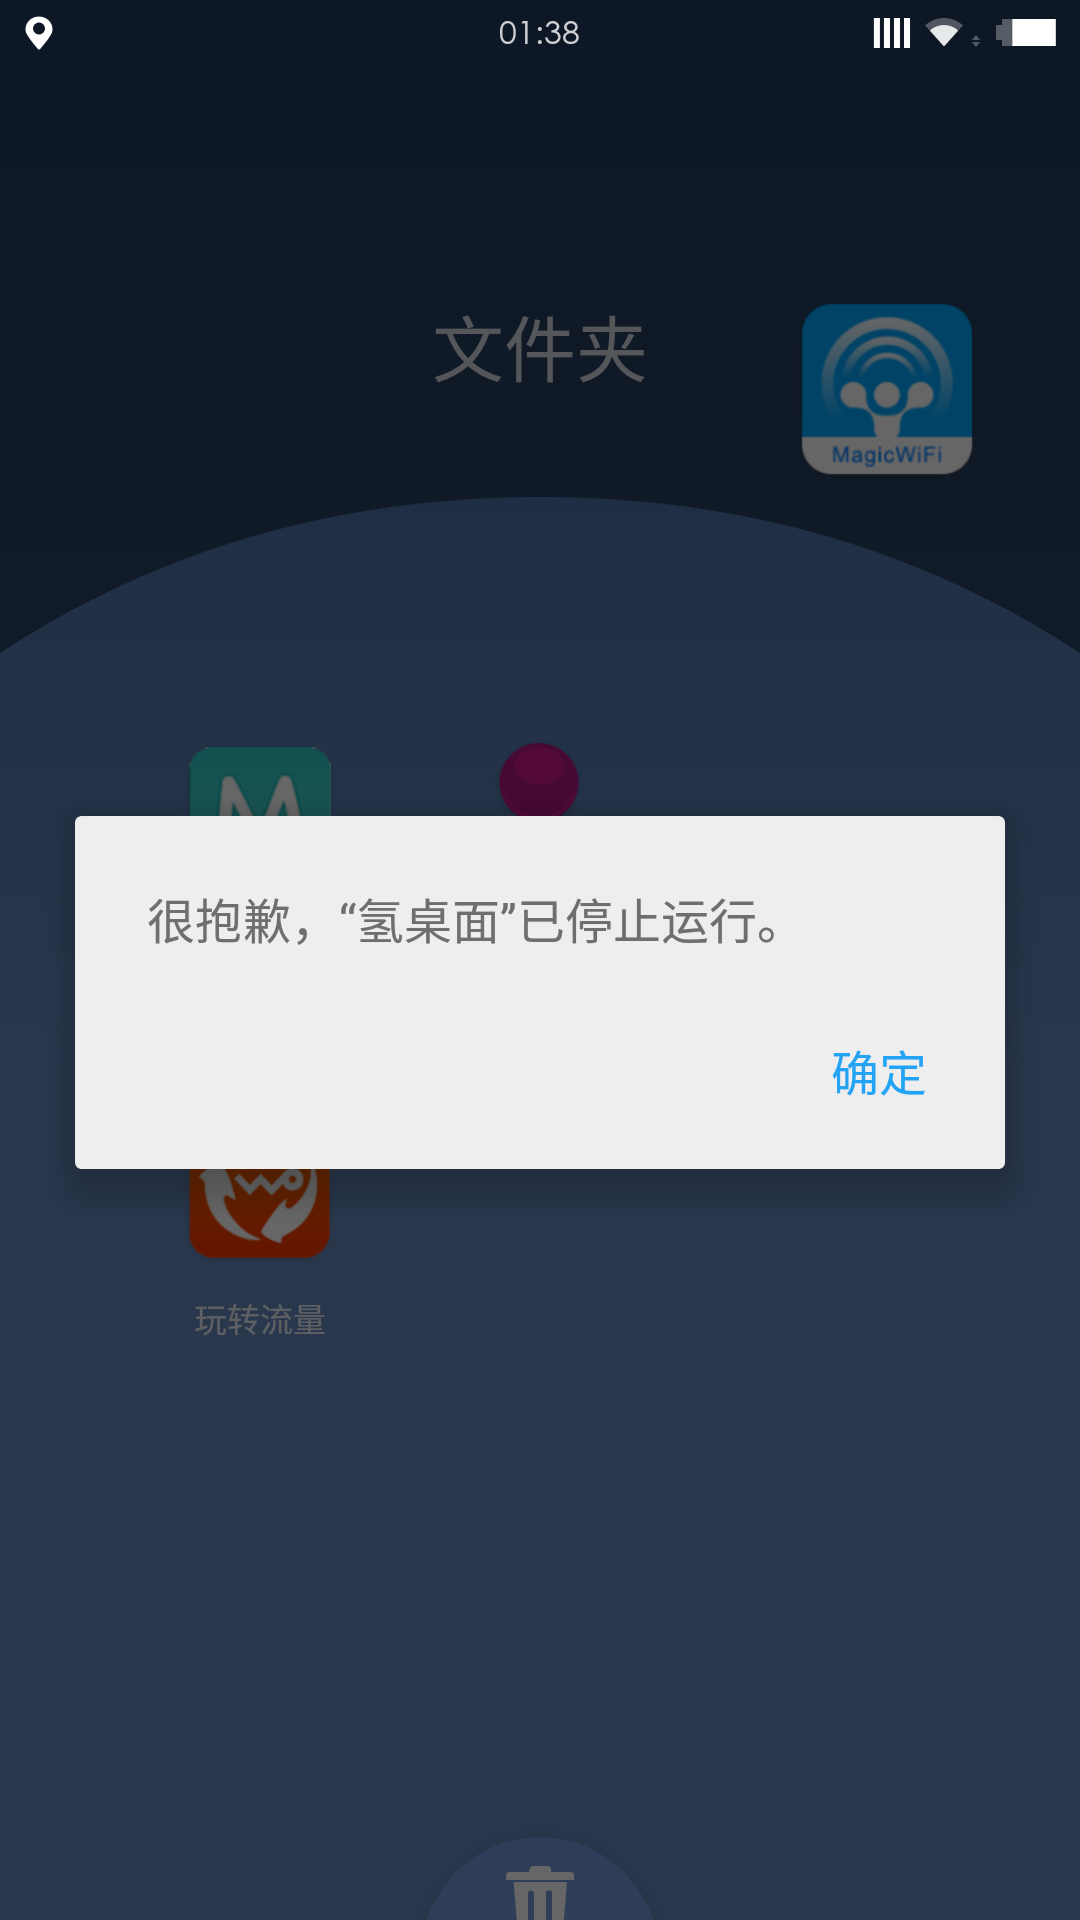 Screenshot_2015-08-23-01-38-30.png